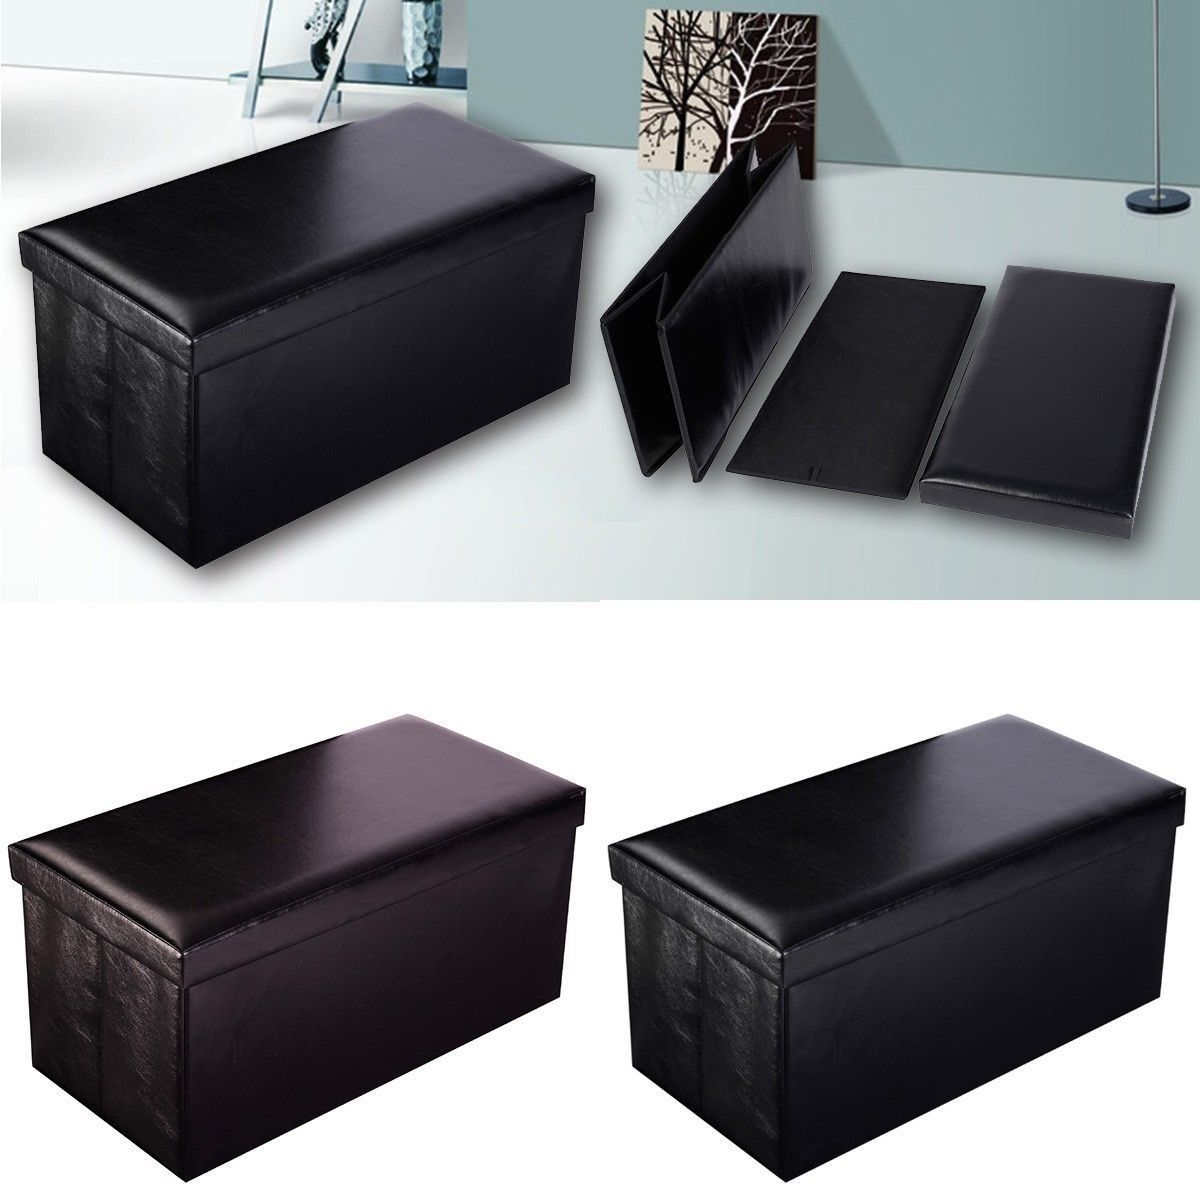 ashley popular blue ottoman elegant leather featured storage and drawers furniture with stylish bedroom